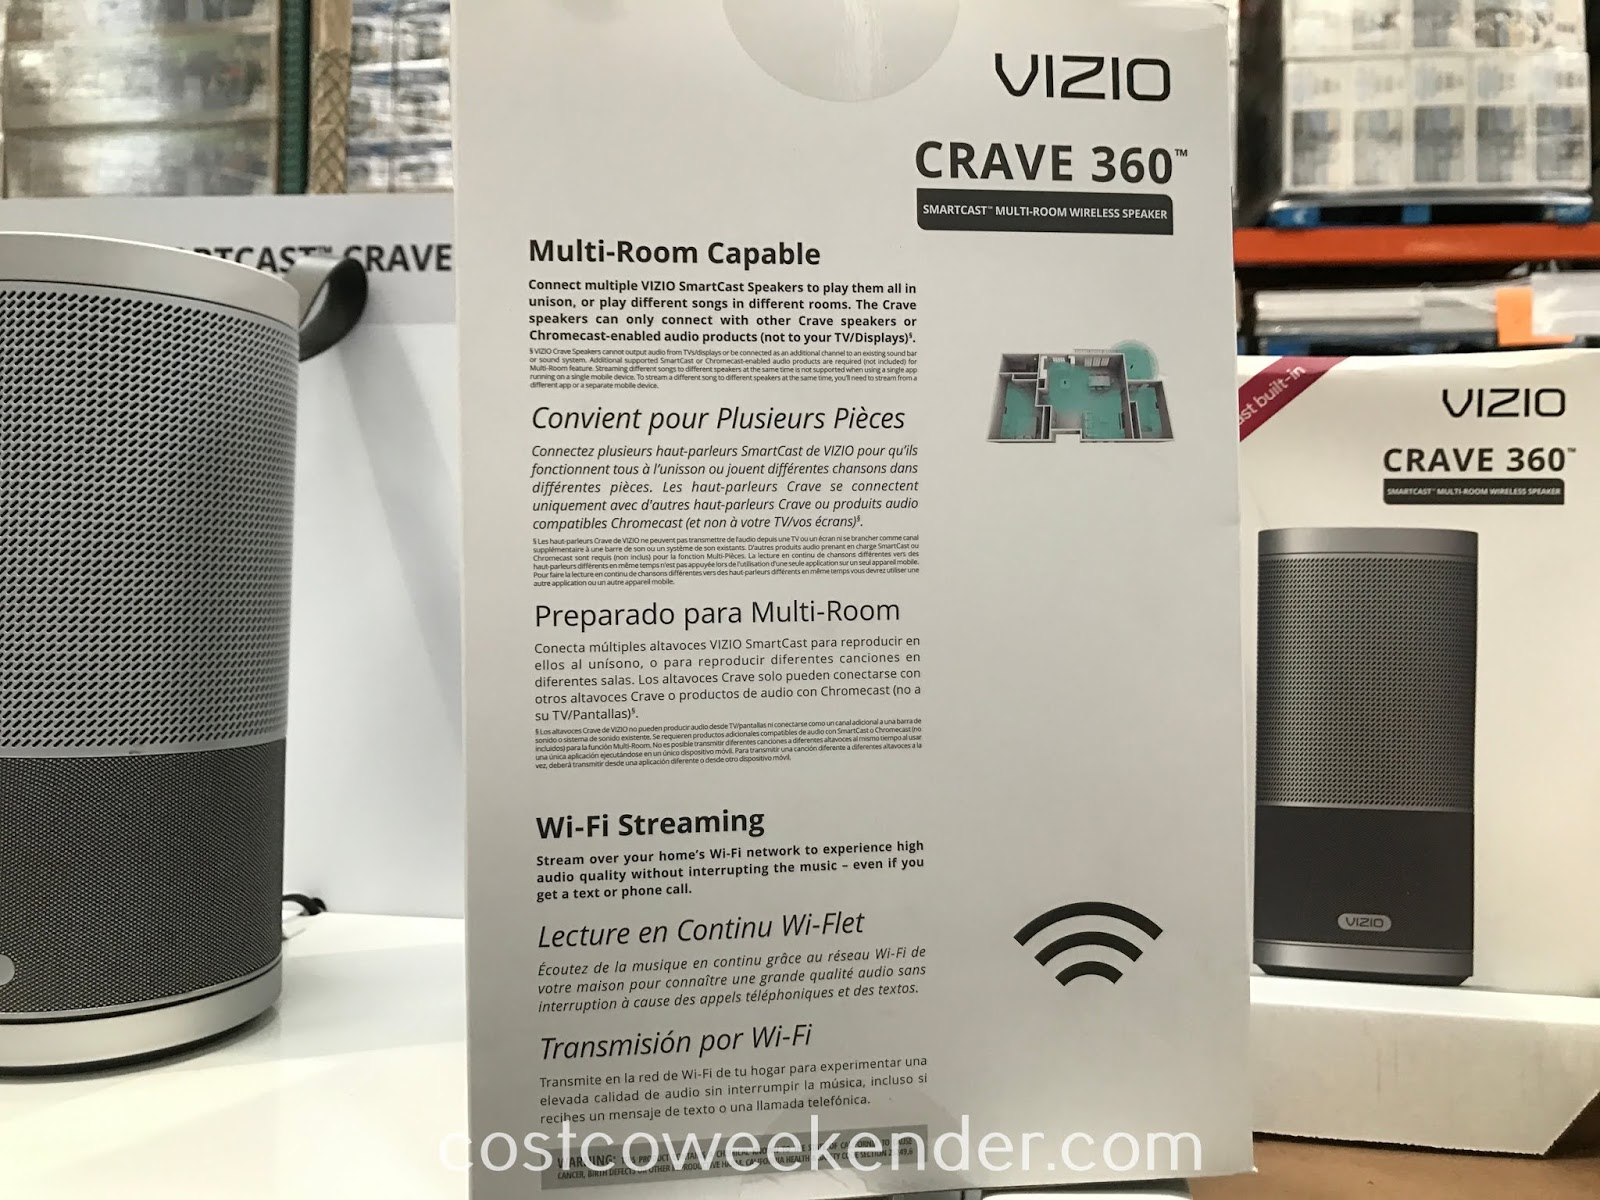 No need to have a large stereo system when you have the Vizio Crave 360 SmartCast Speaker